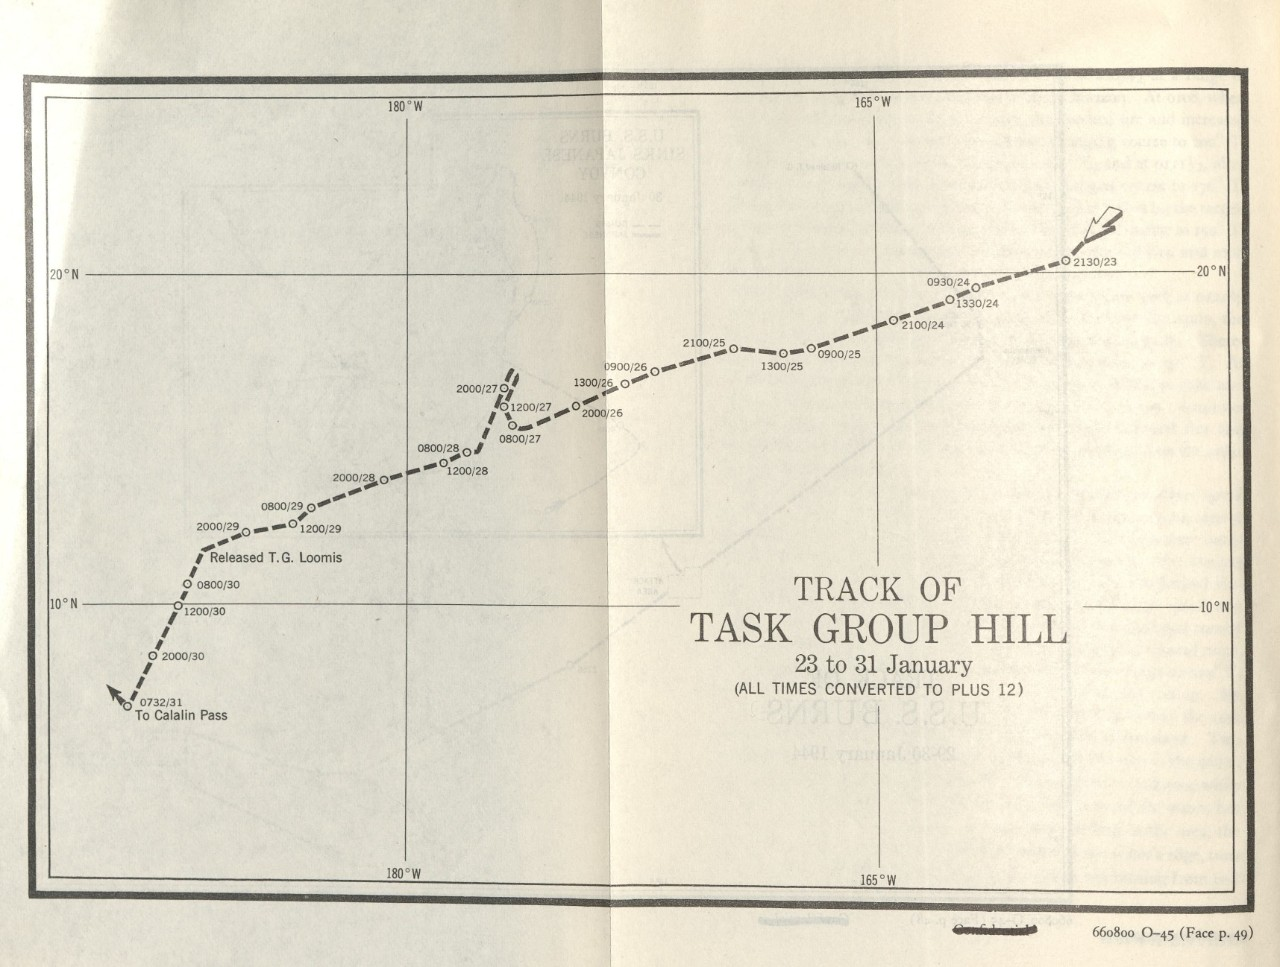 Track of Task Group Hill 23 to 31 January